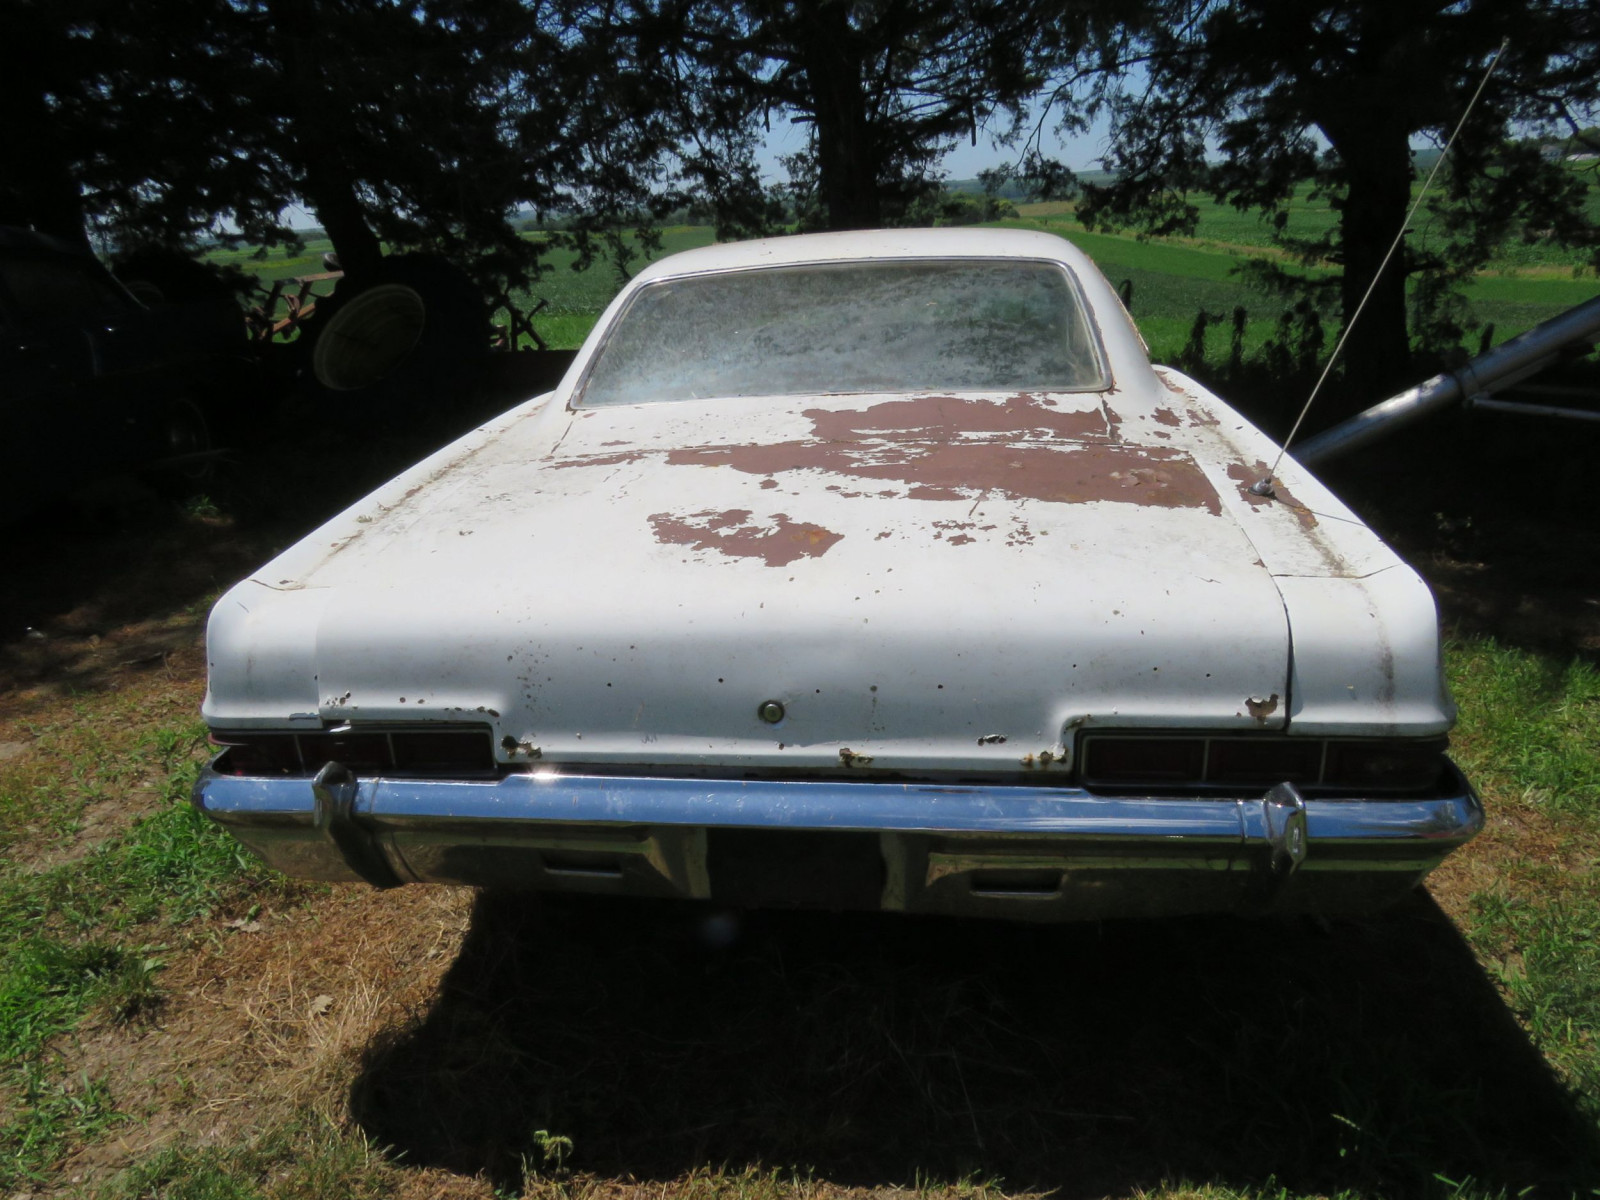 1965 Chevrolet Impala For Project or parts - Image 5